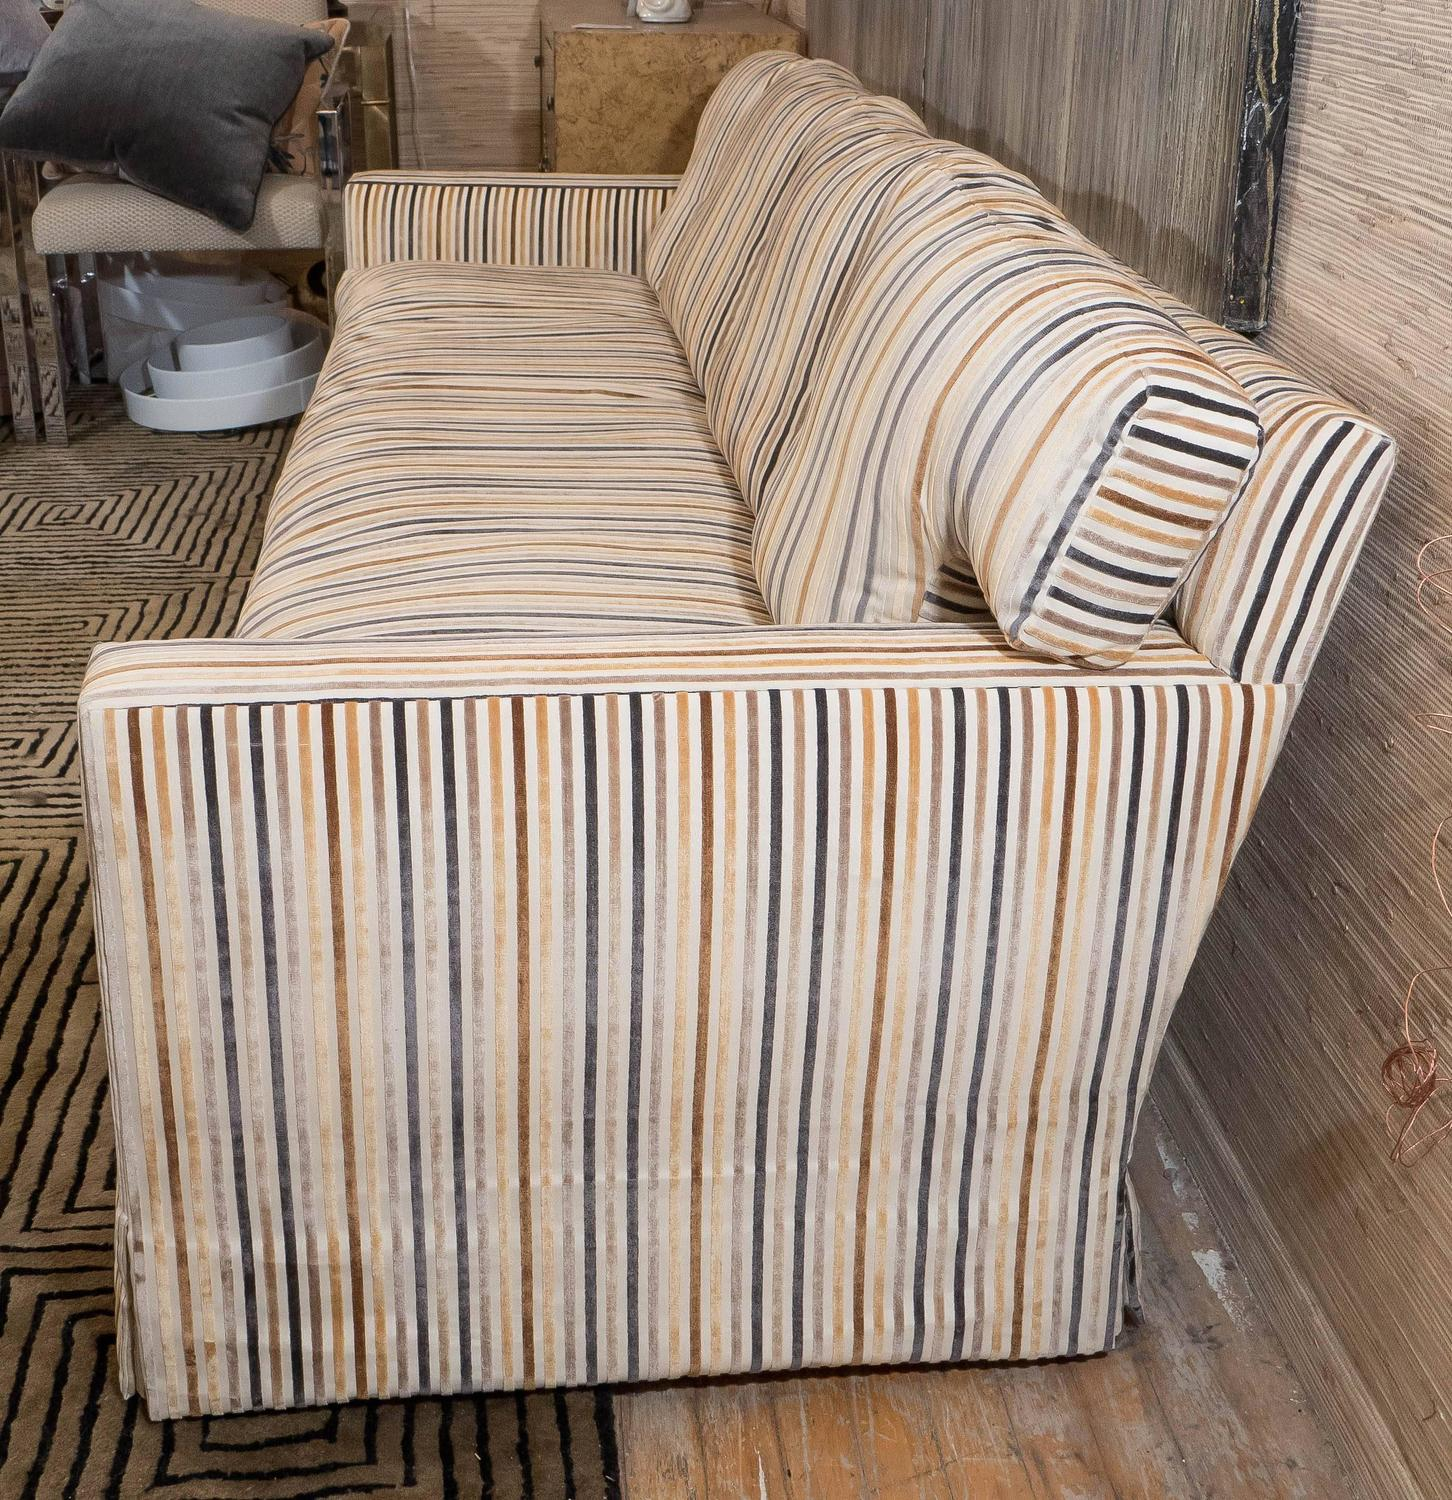 Sofas Used Sofas For Sale: Midcentury Down Sofa In Striped Cut Velvet For Sale At 1stdibs